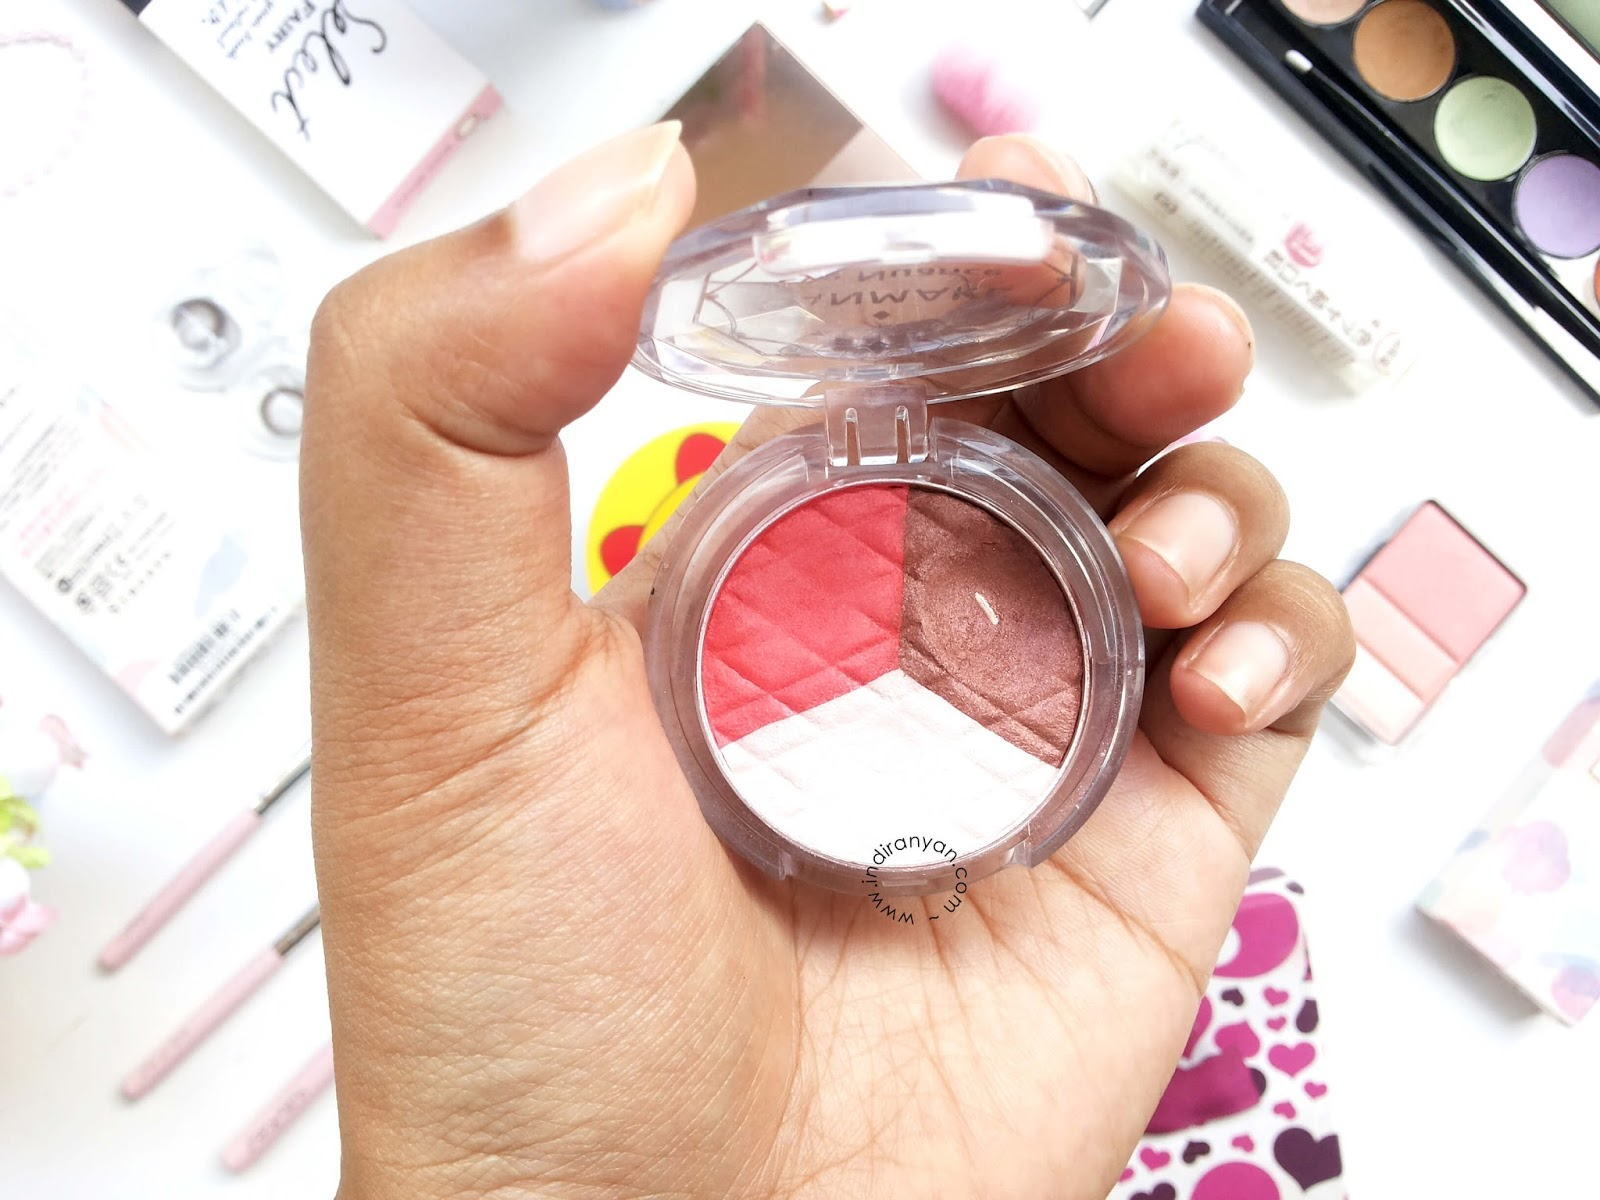 canmake-eye-nuance, review-canmake-eye-nuance, eyeshadow-canmake